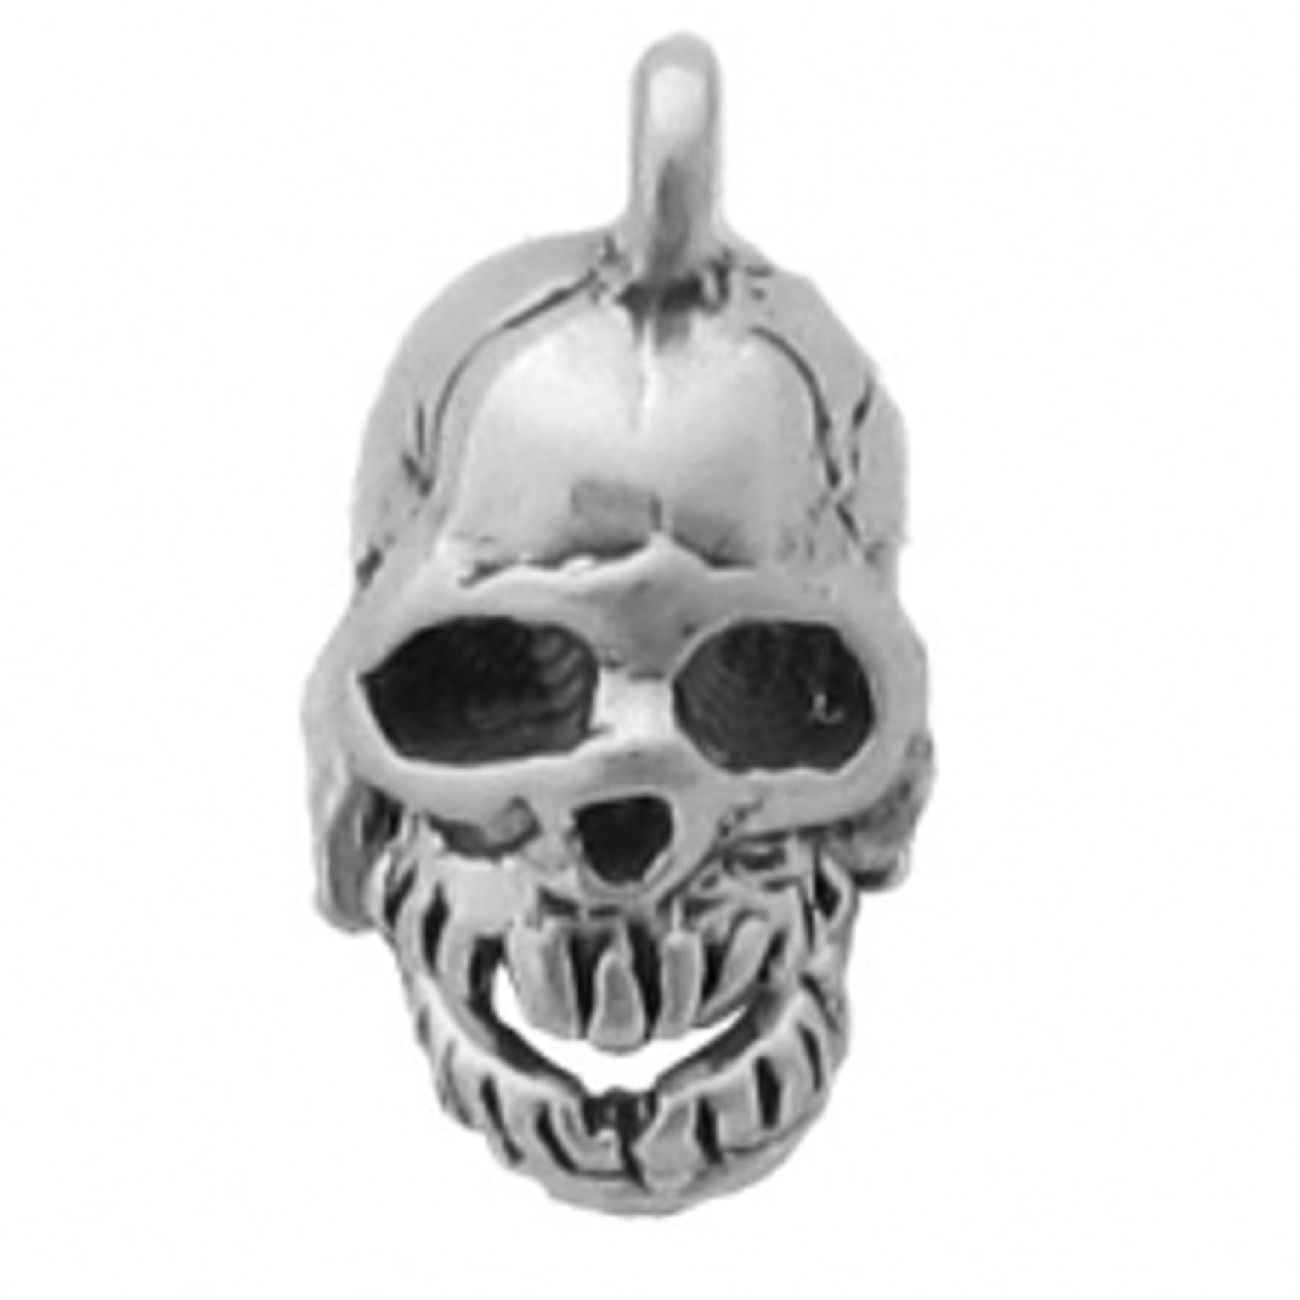 3D Moveable Skull Mouth Charm